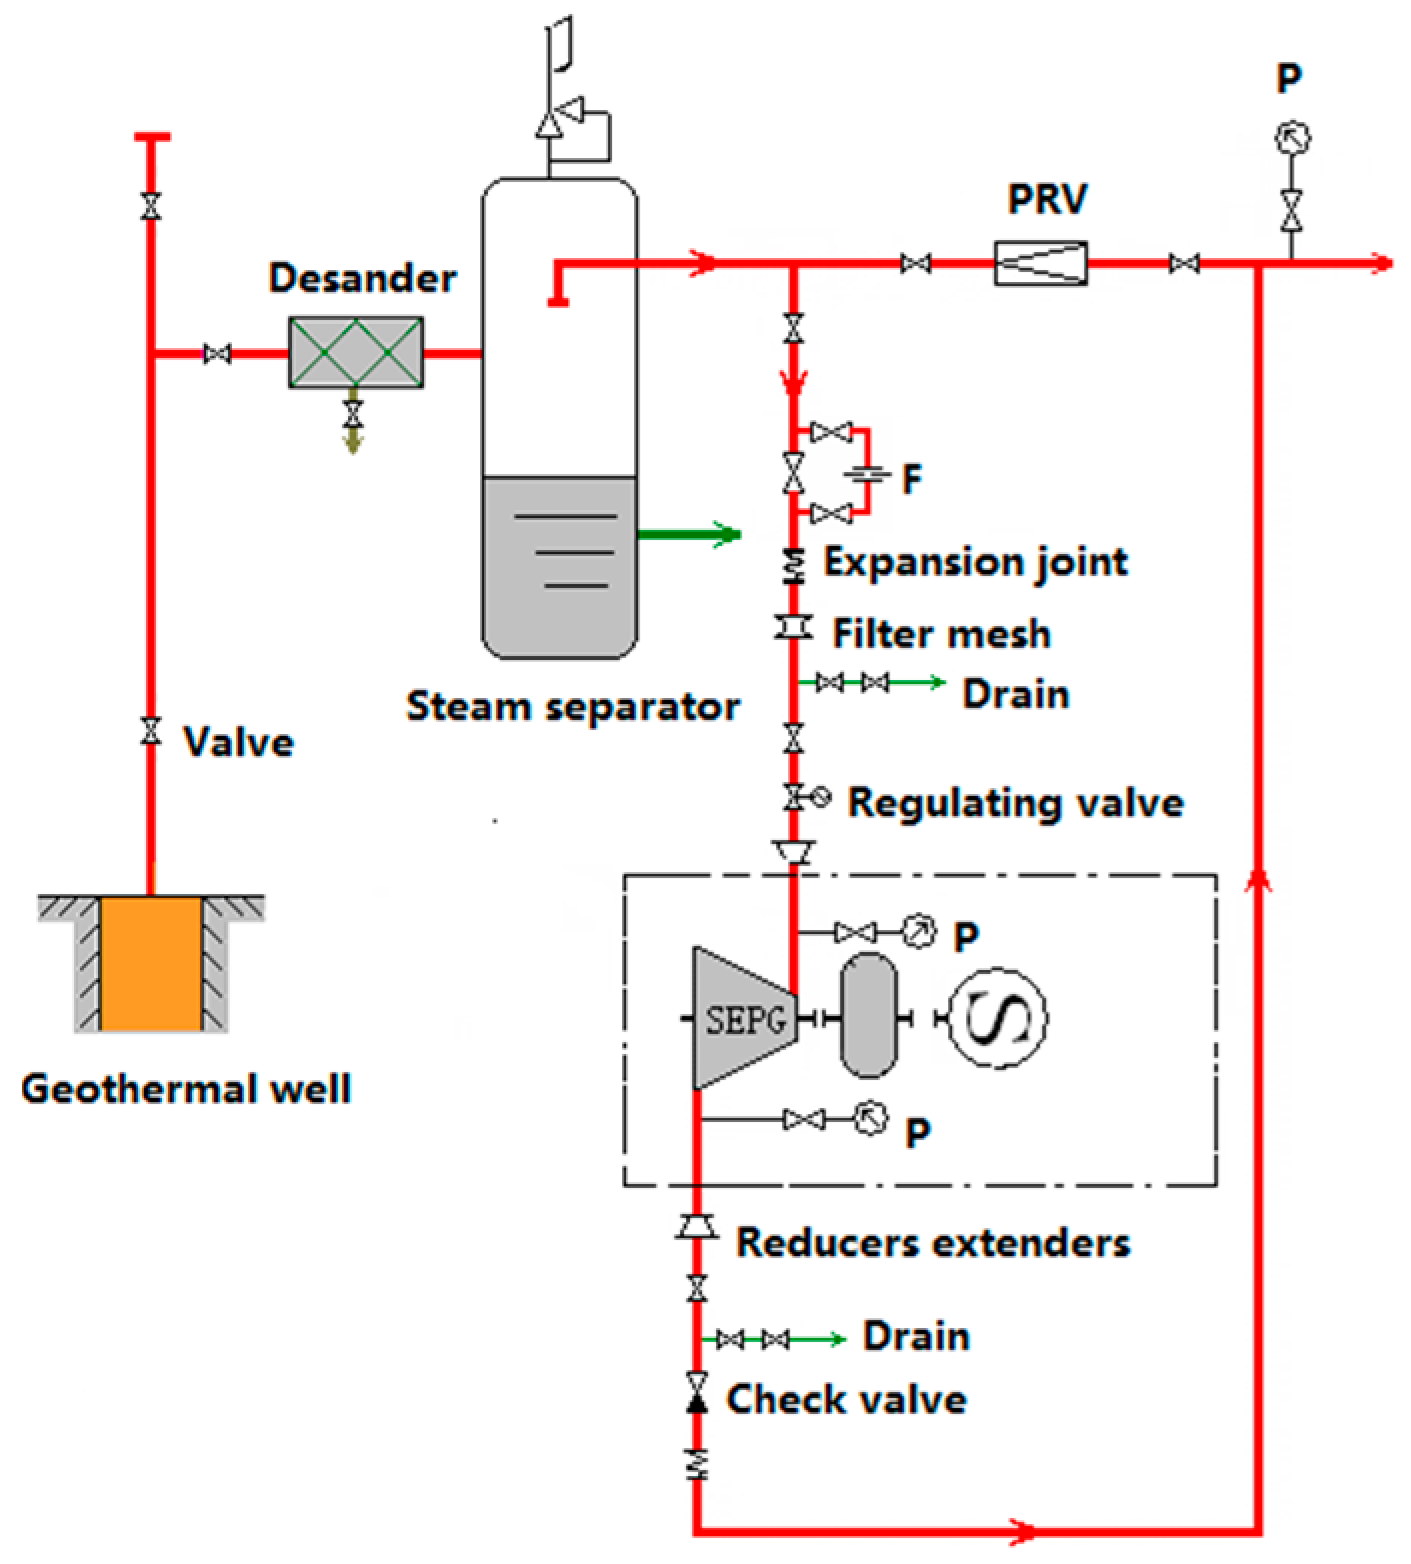 geothermal power plant schematic diagram � geothermal power plant diagram:  thermodynamic simulation on